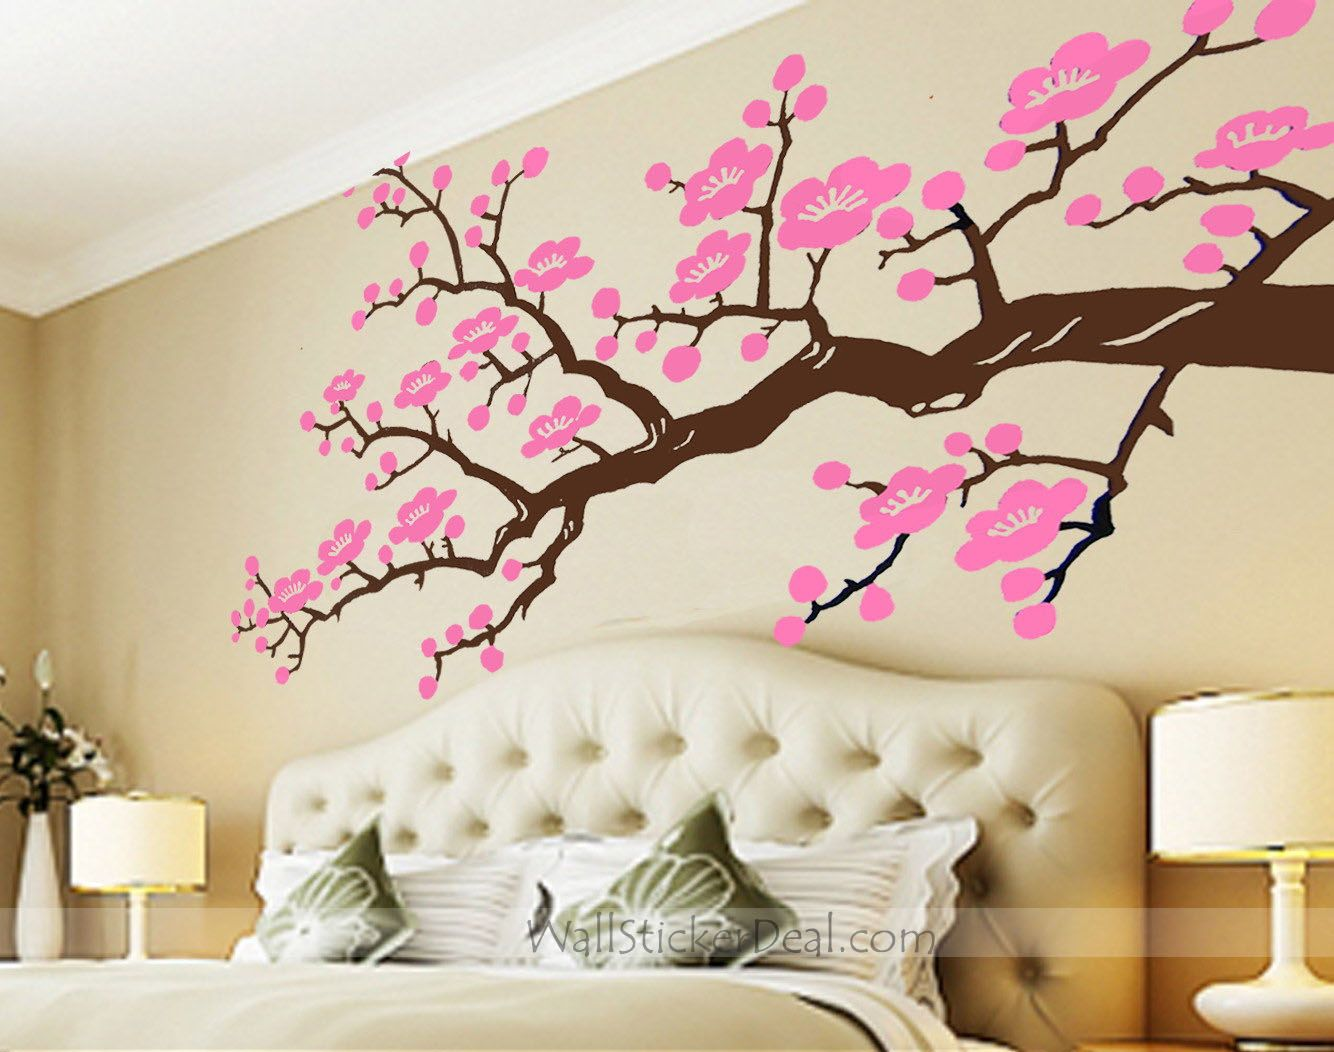 Photo Of Cherry Blossom Branches Wall Stickers For Fans Of Home Decorating Http